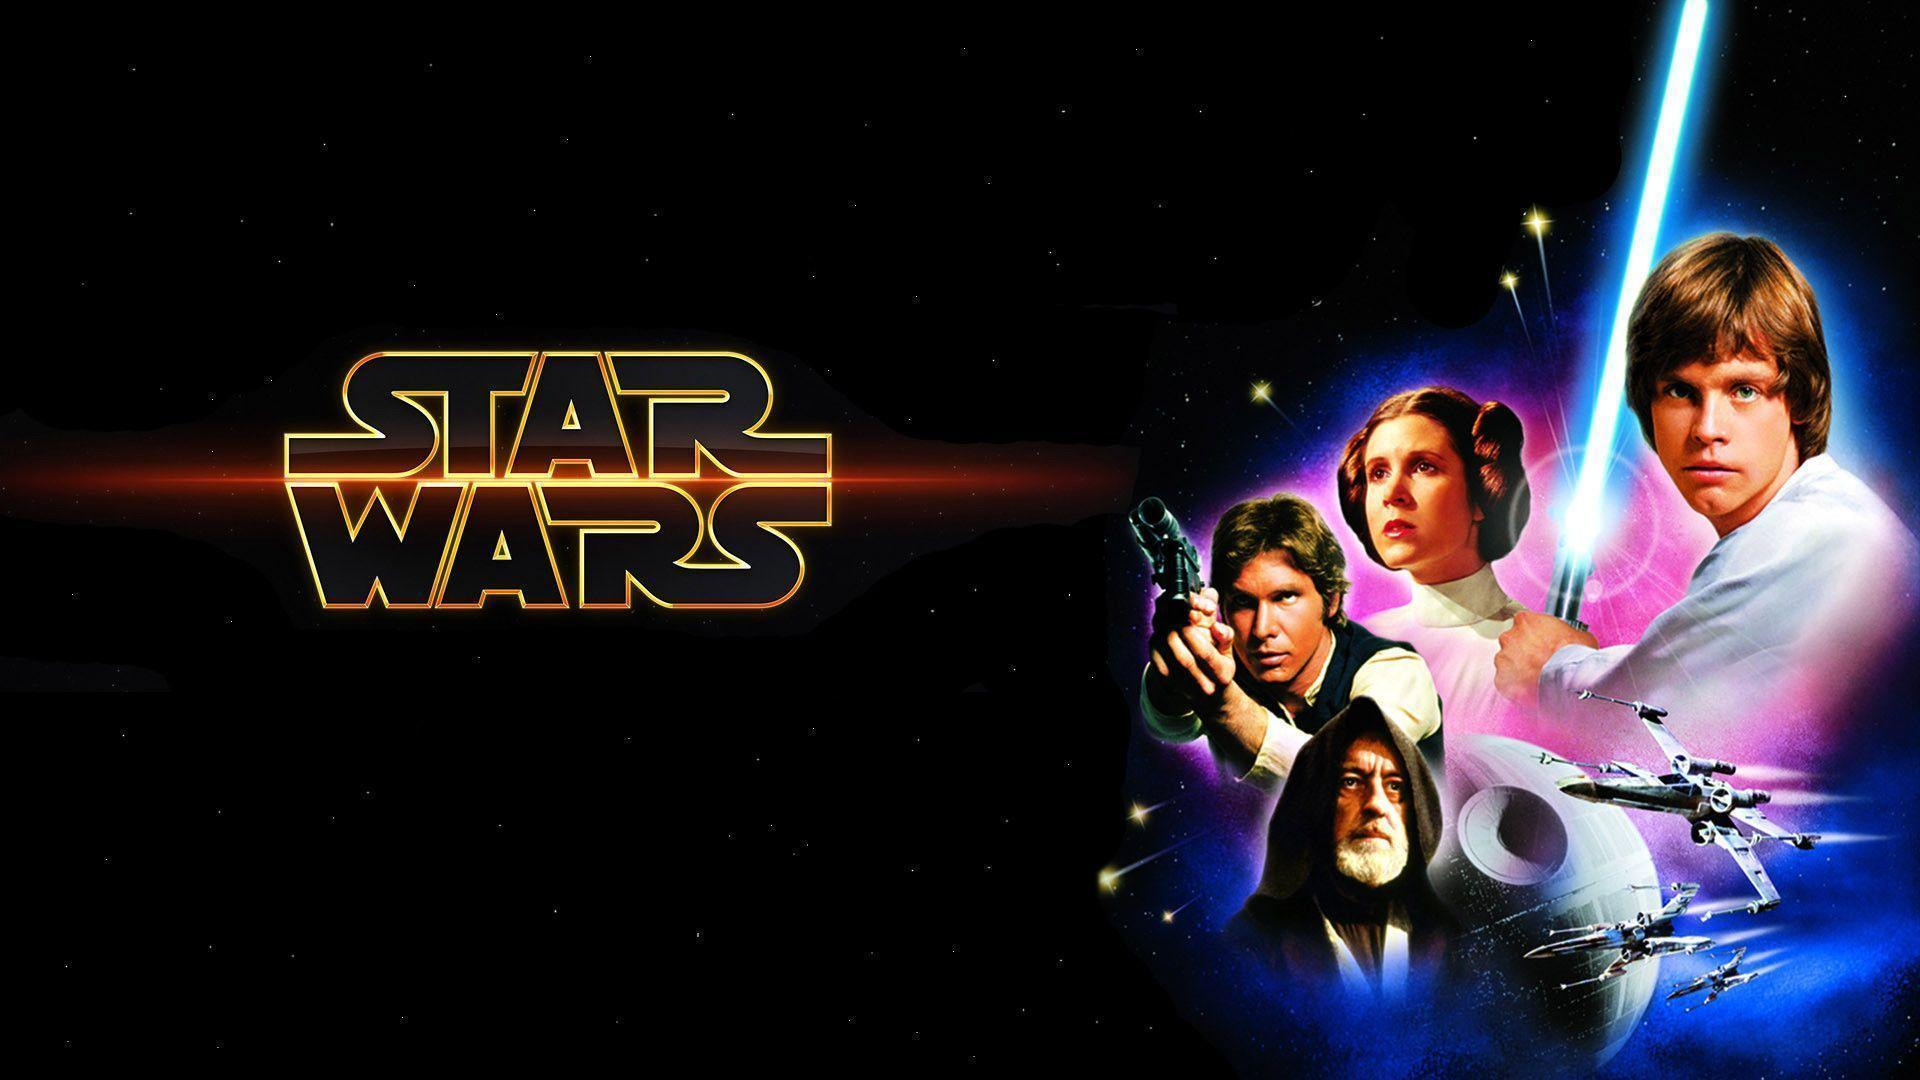 Star Wars 4 Wallpapers Wallpaper Cave